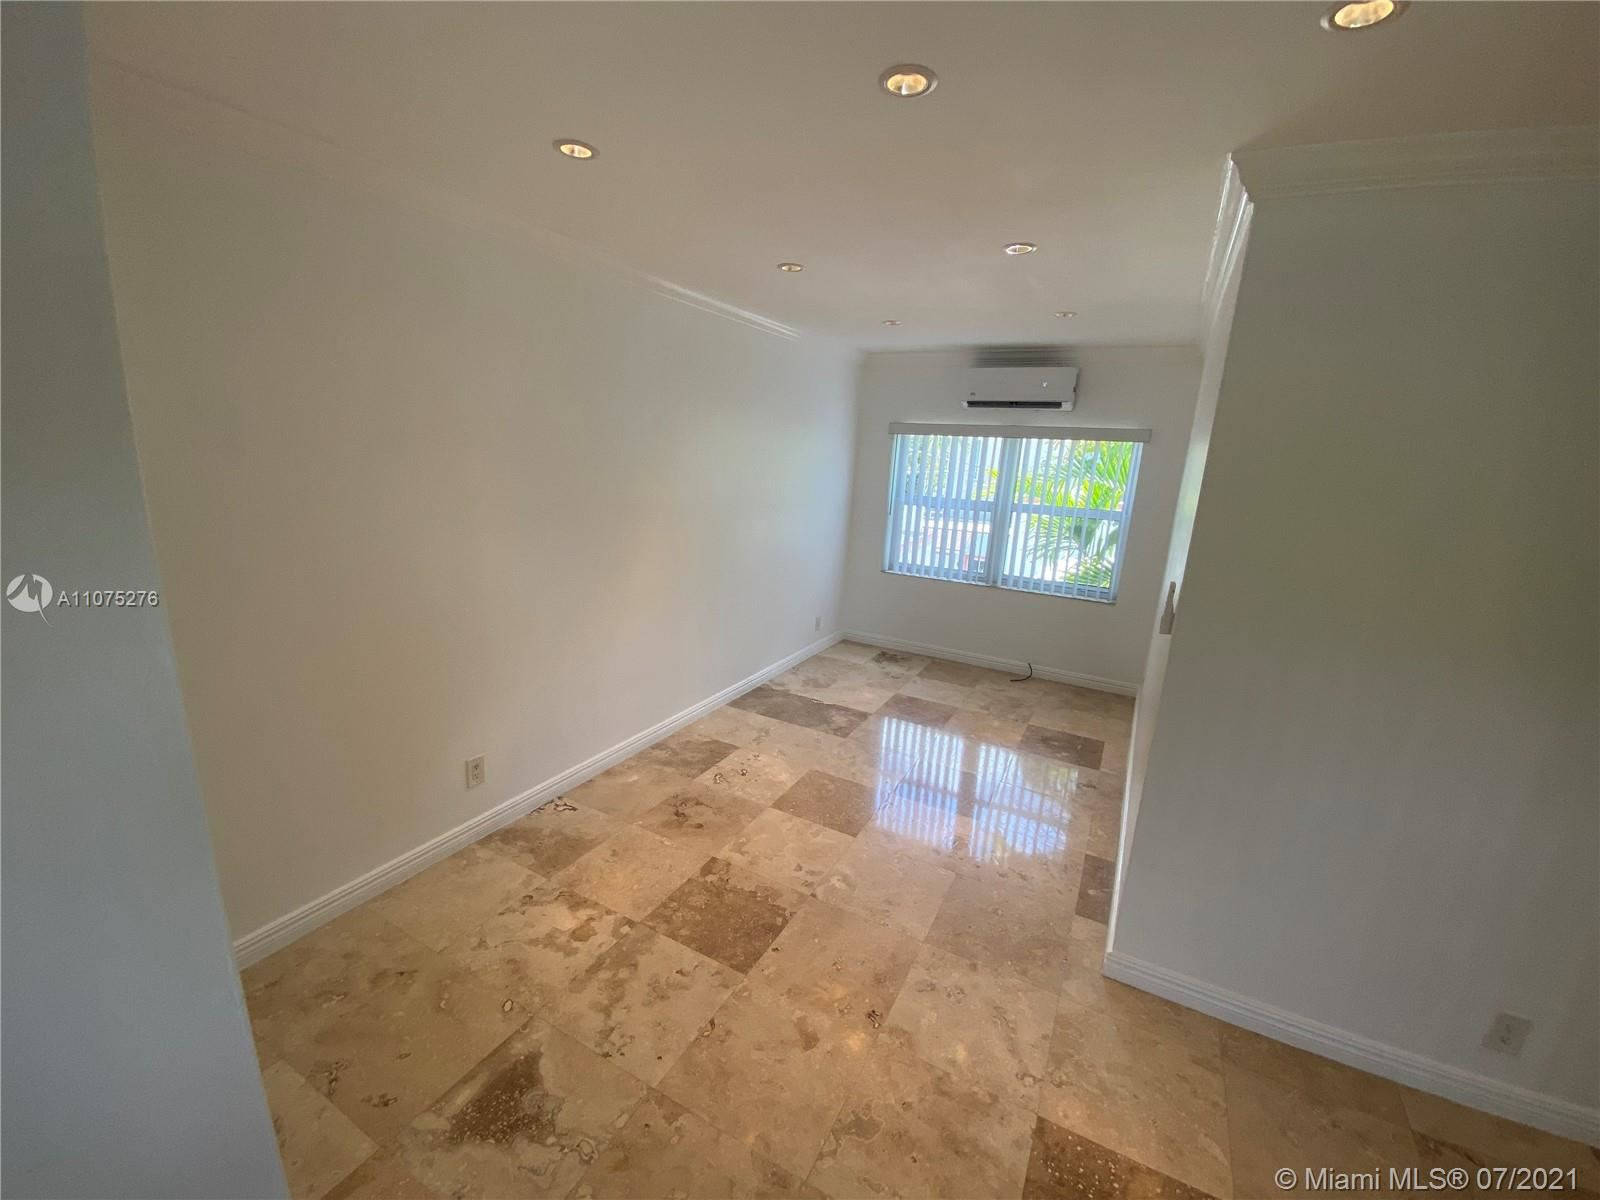 Photo of Fort Lauderdale, FL 33301 (MLS # A11075276)